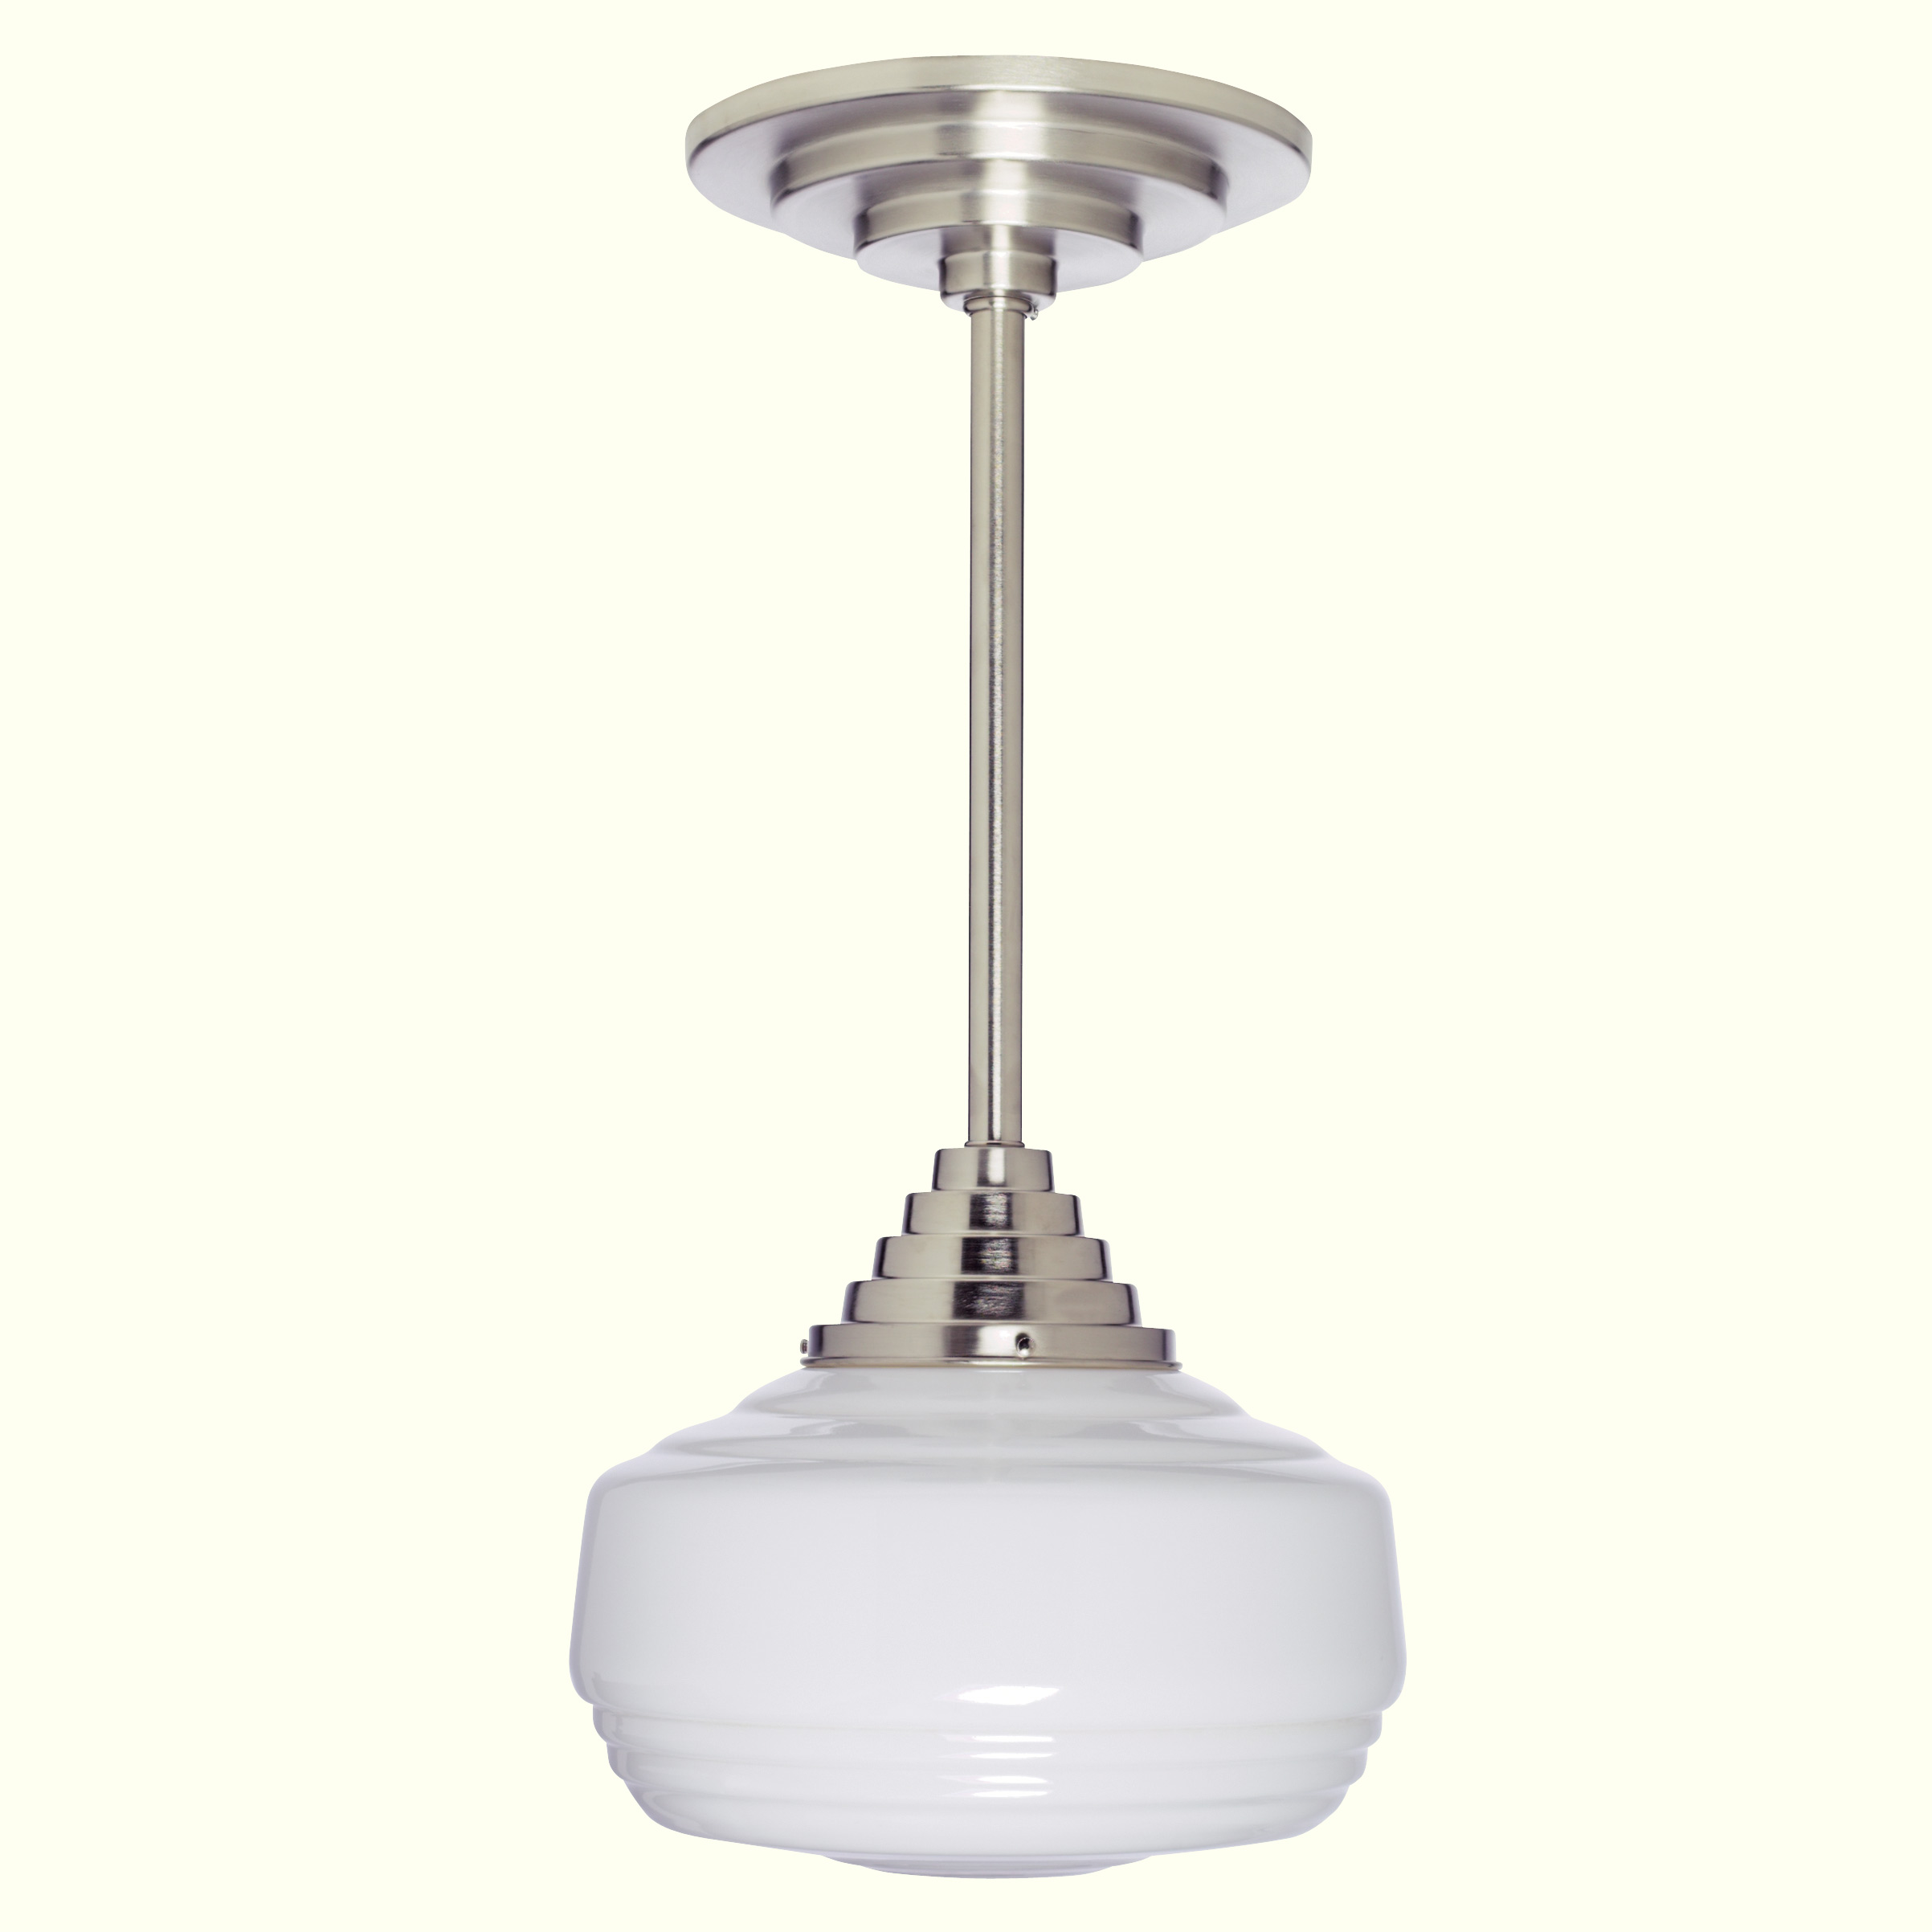 New retro dining retro pendant light fixture for A lamp and fixture